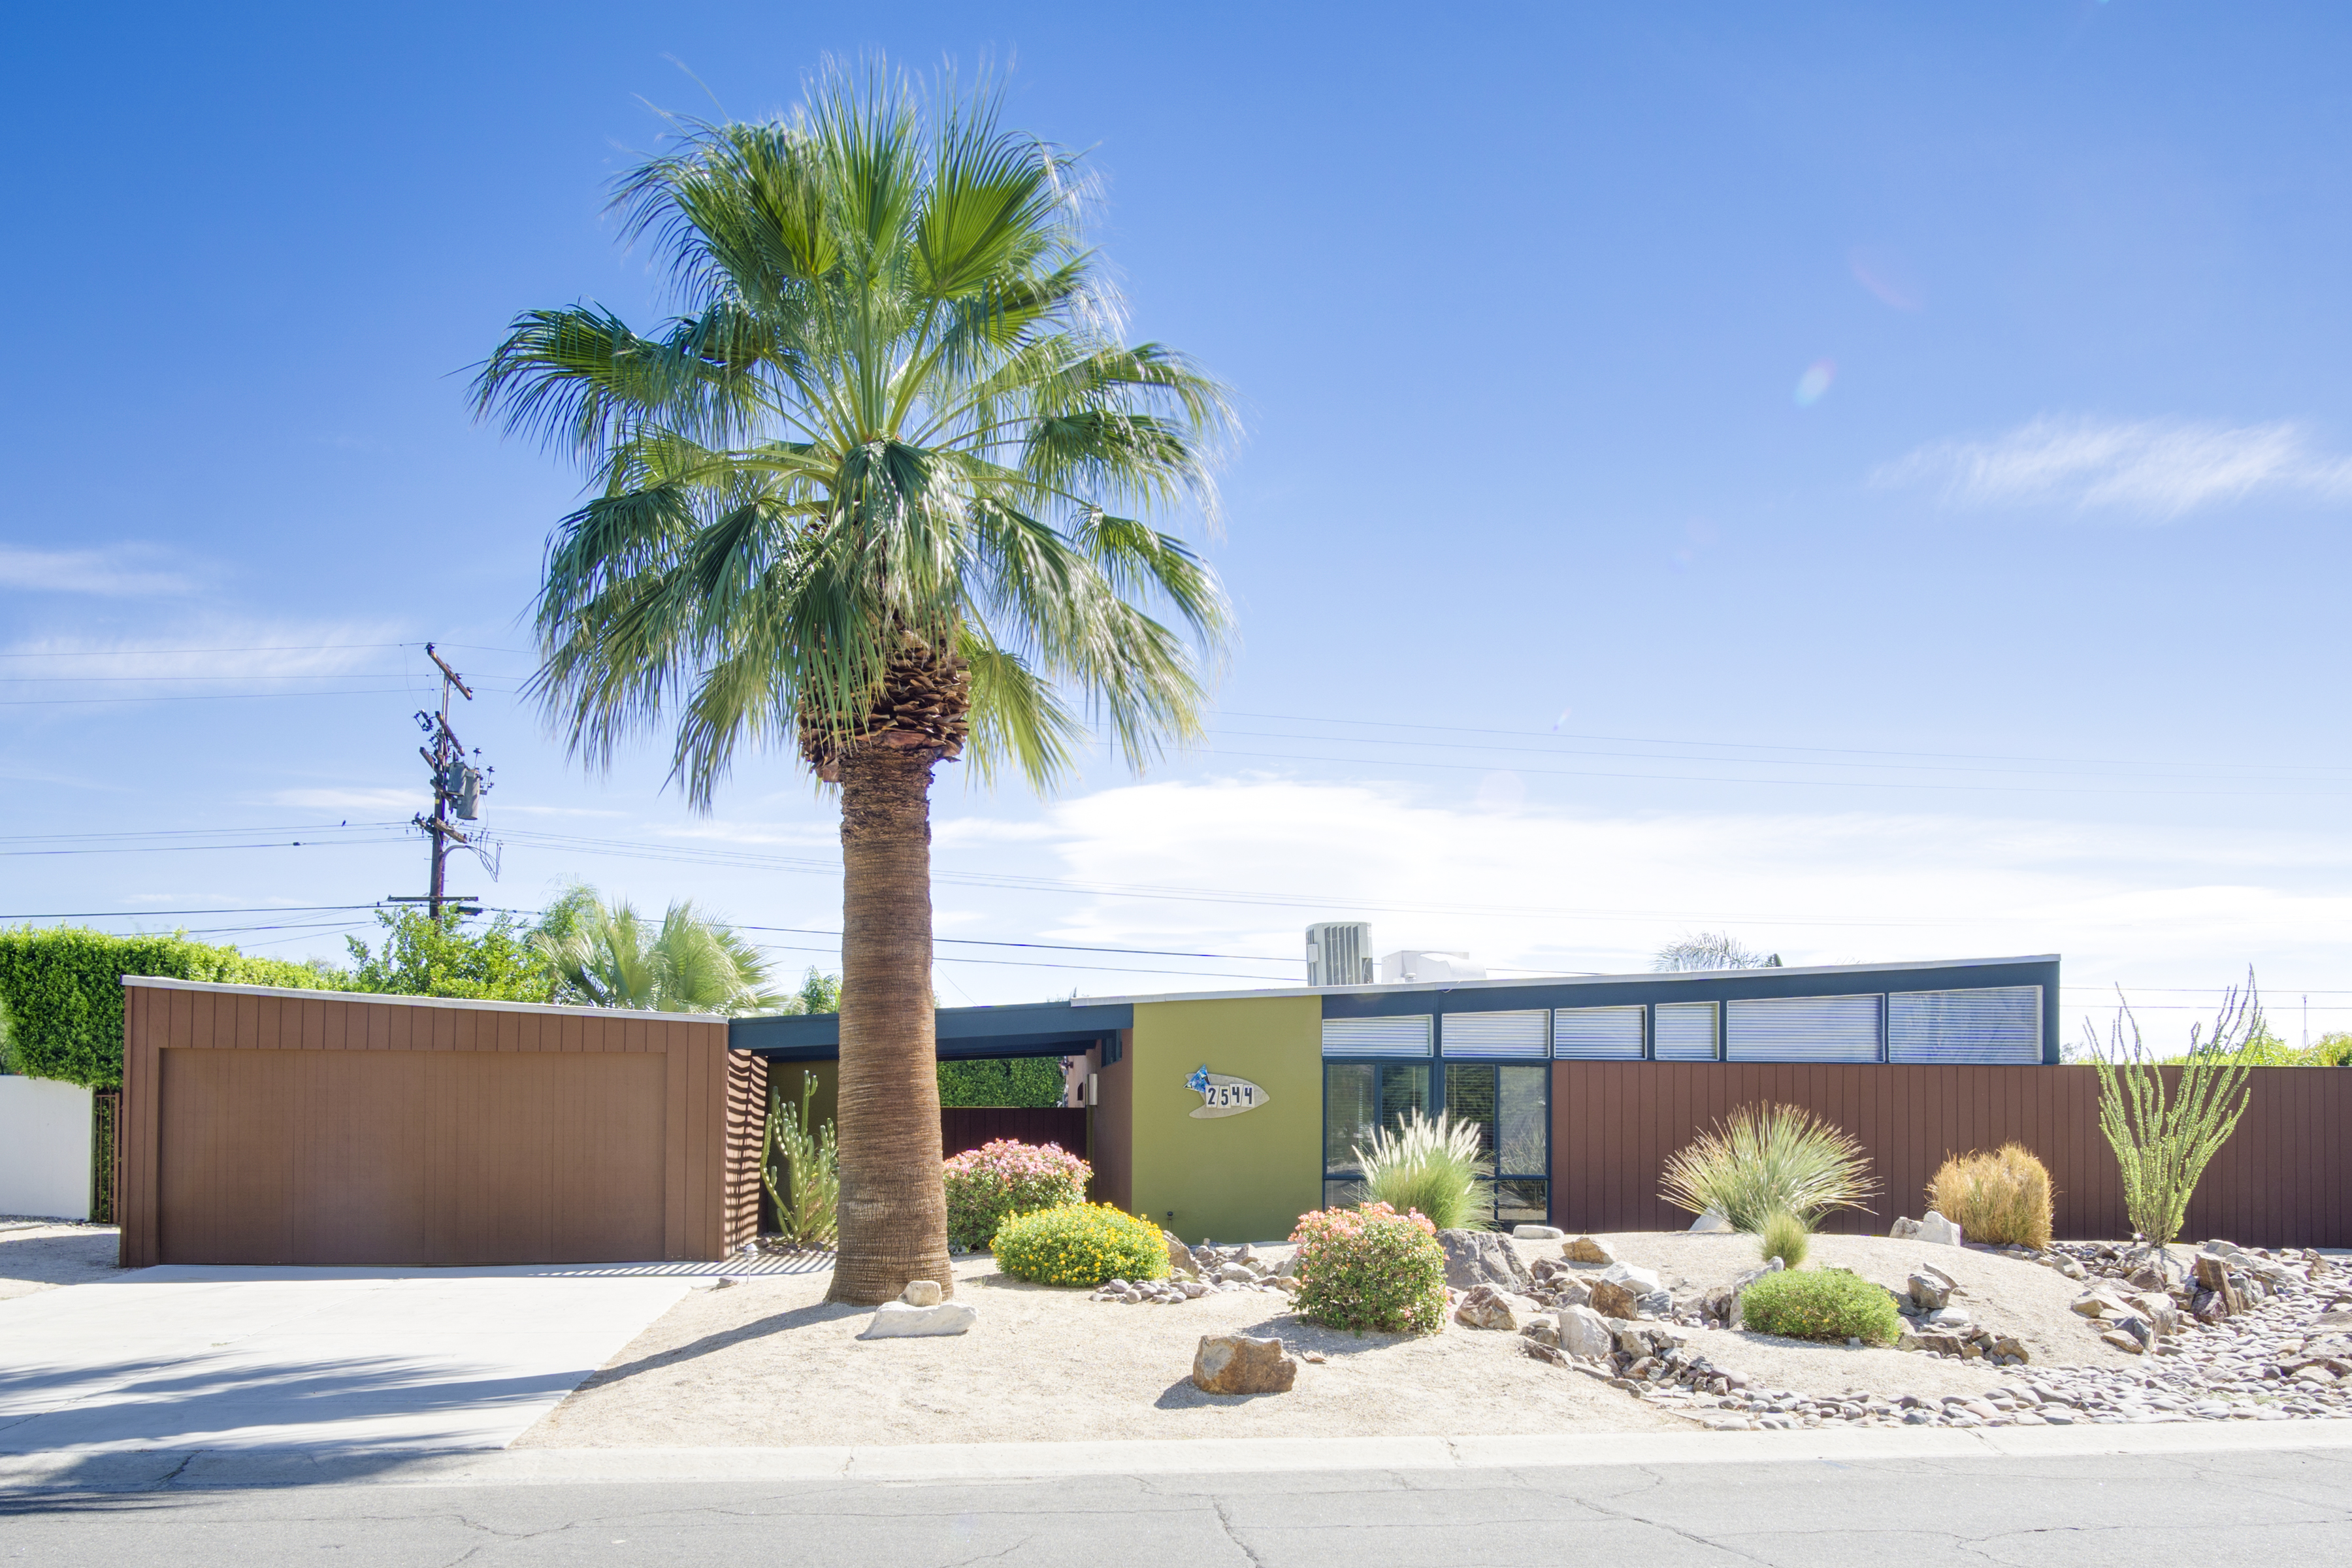 Butterfly alexander home in palm springs ra88551 redawning for Property in palm springs